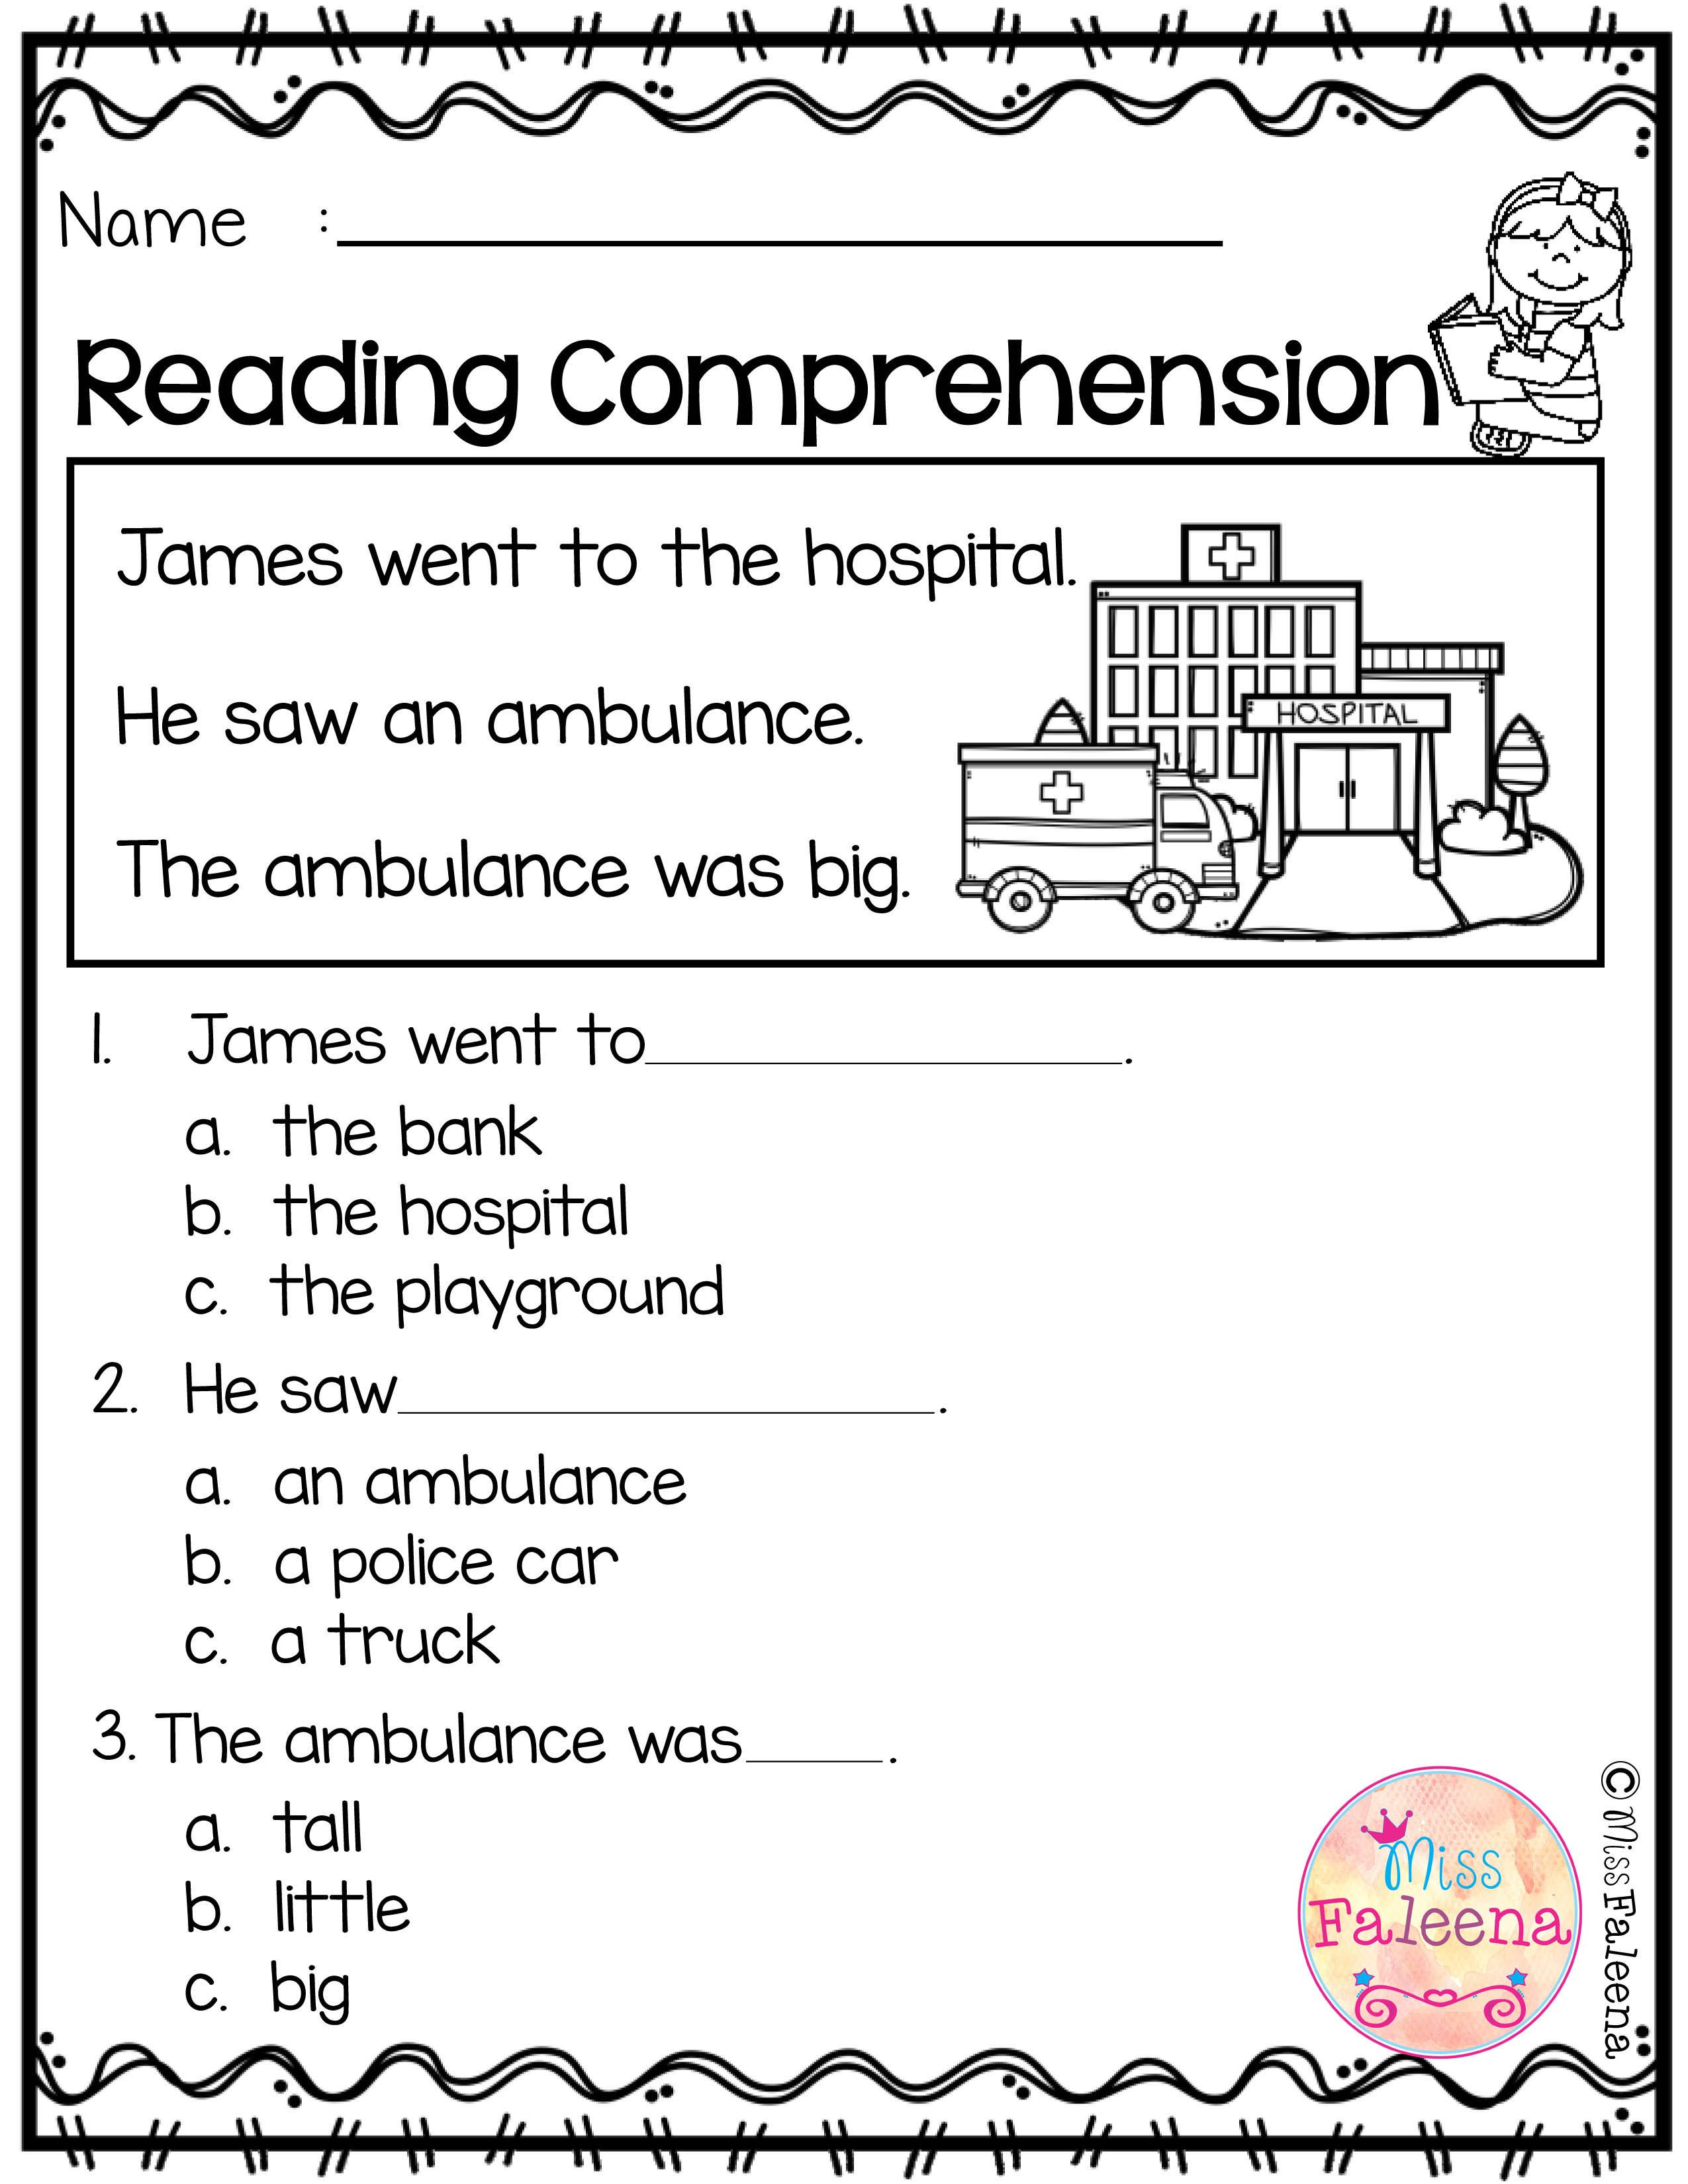 https://dubaikhalifas.com/reading-comprehension-passages-questions-first-grade-kinder-bundle-in-2020-with-images/ [ 91 x 3300 Pixel ]